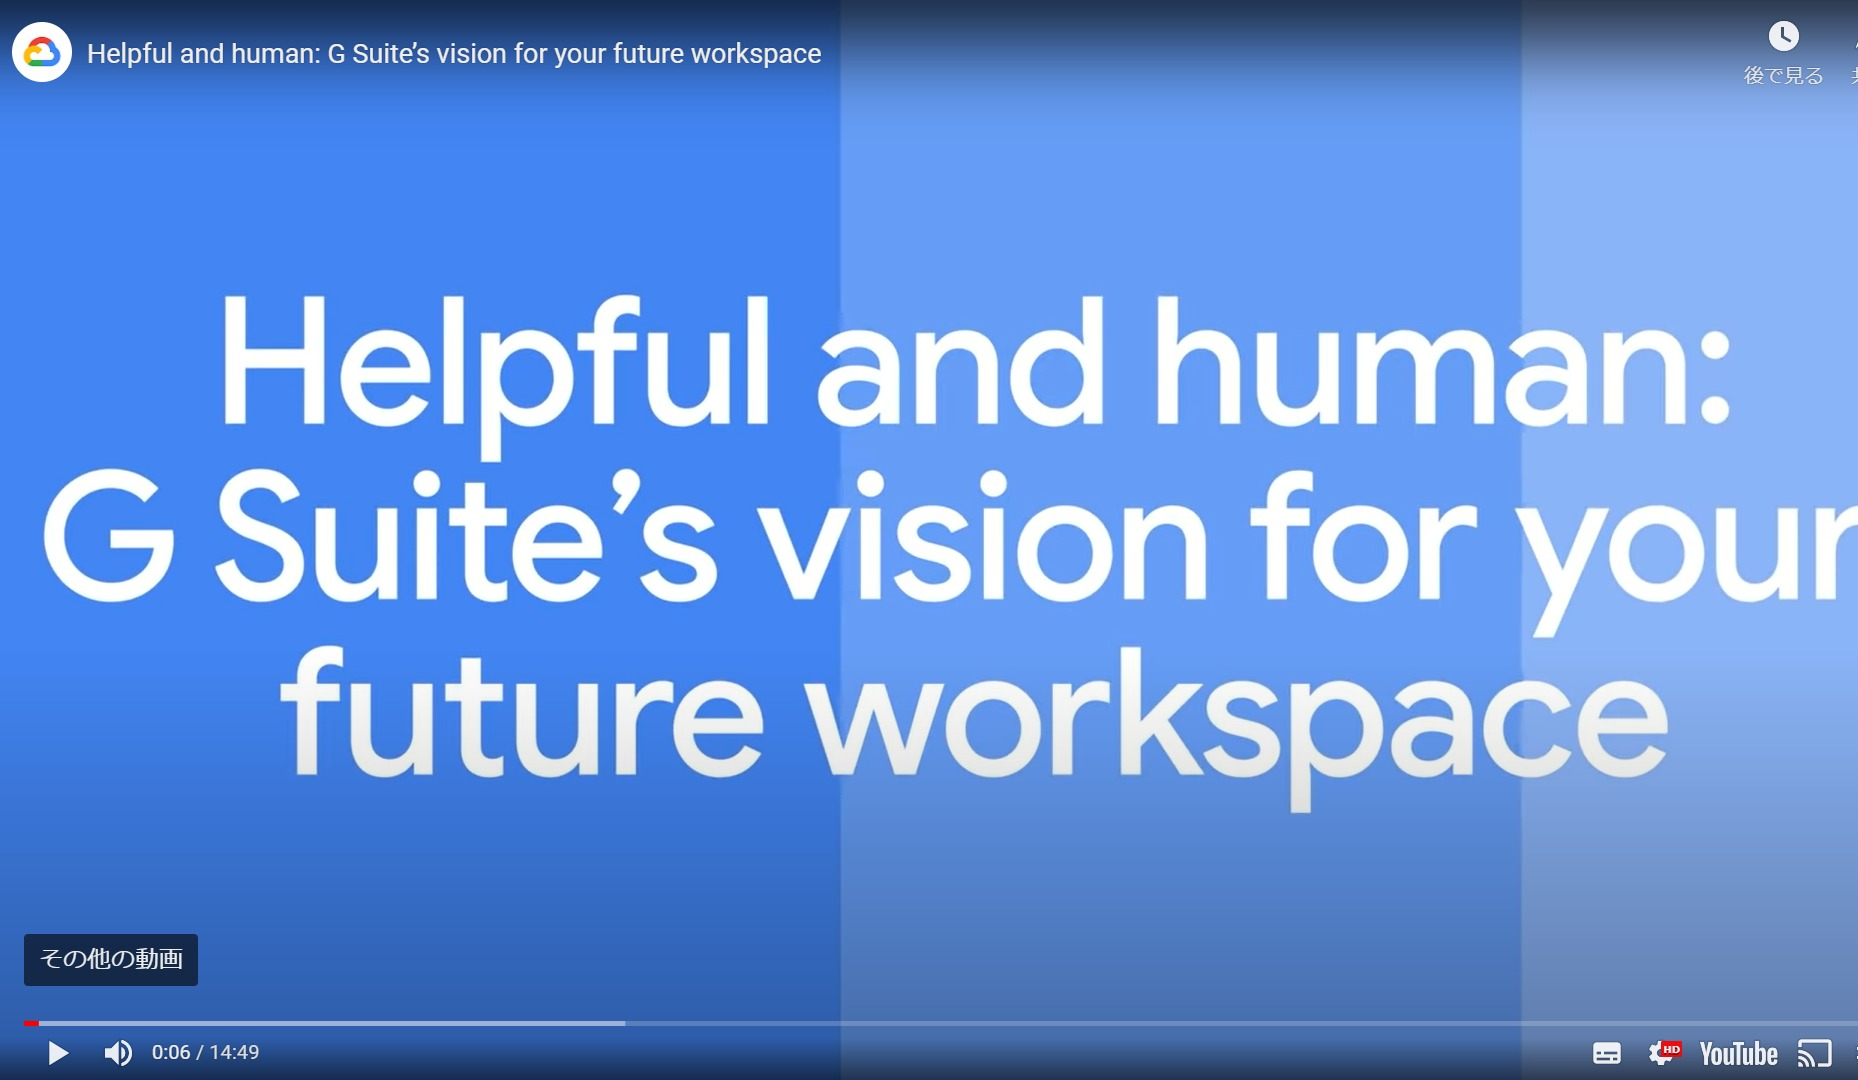 Helpful and human: G Suite's vision for your future workspace